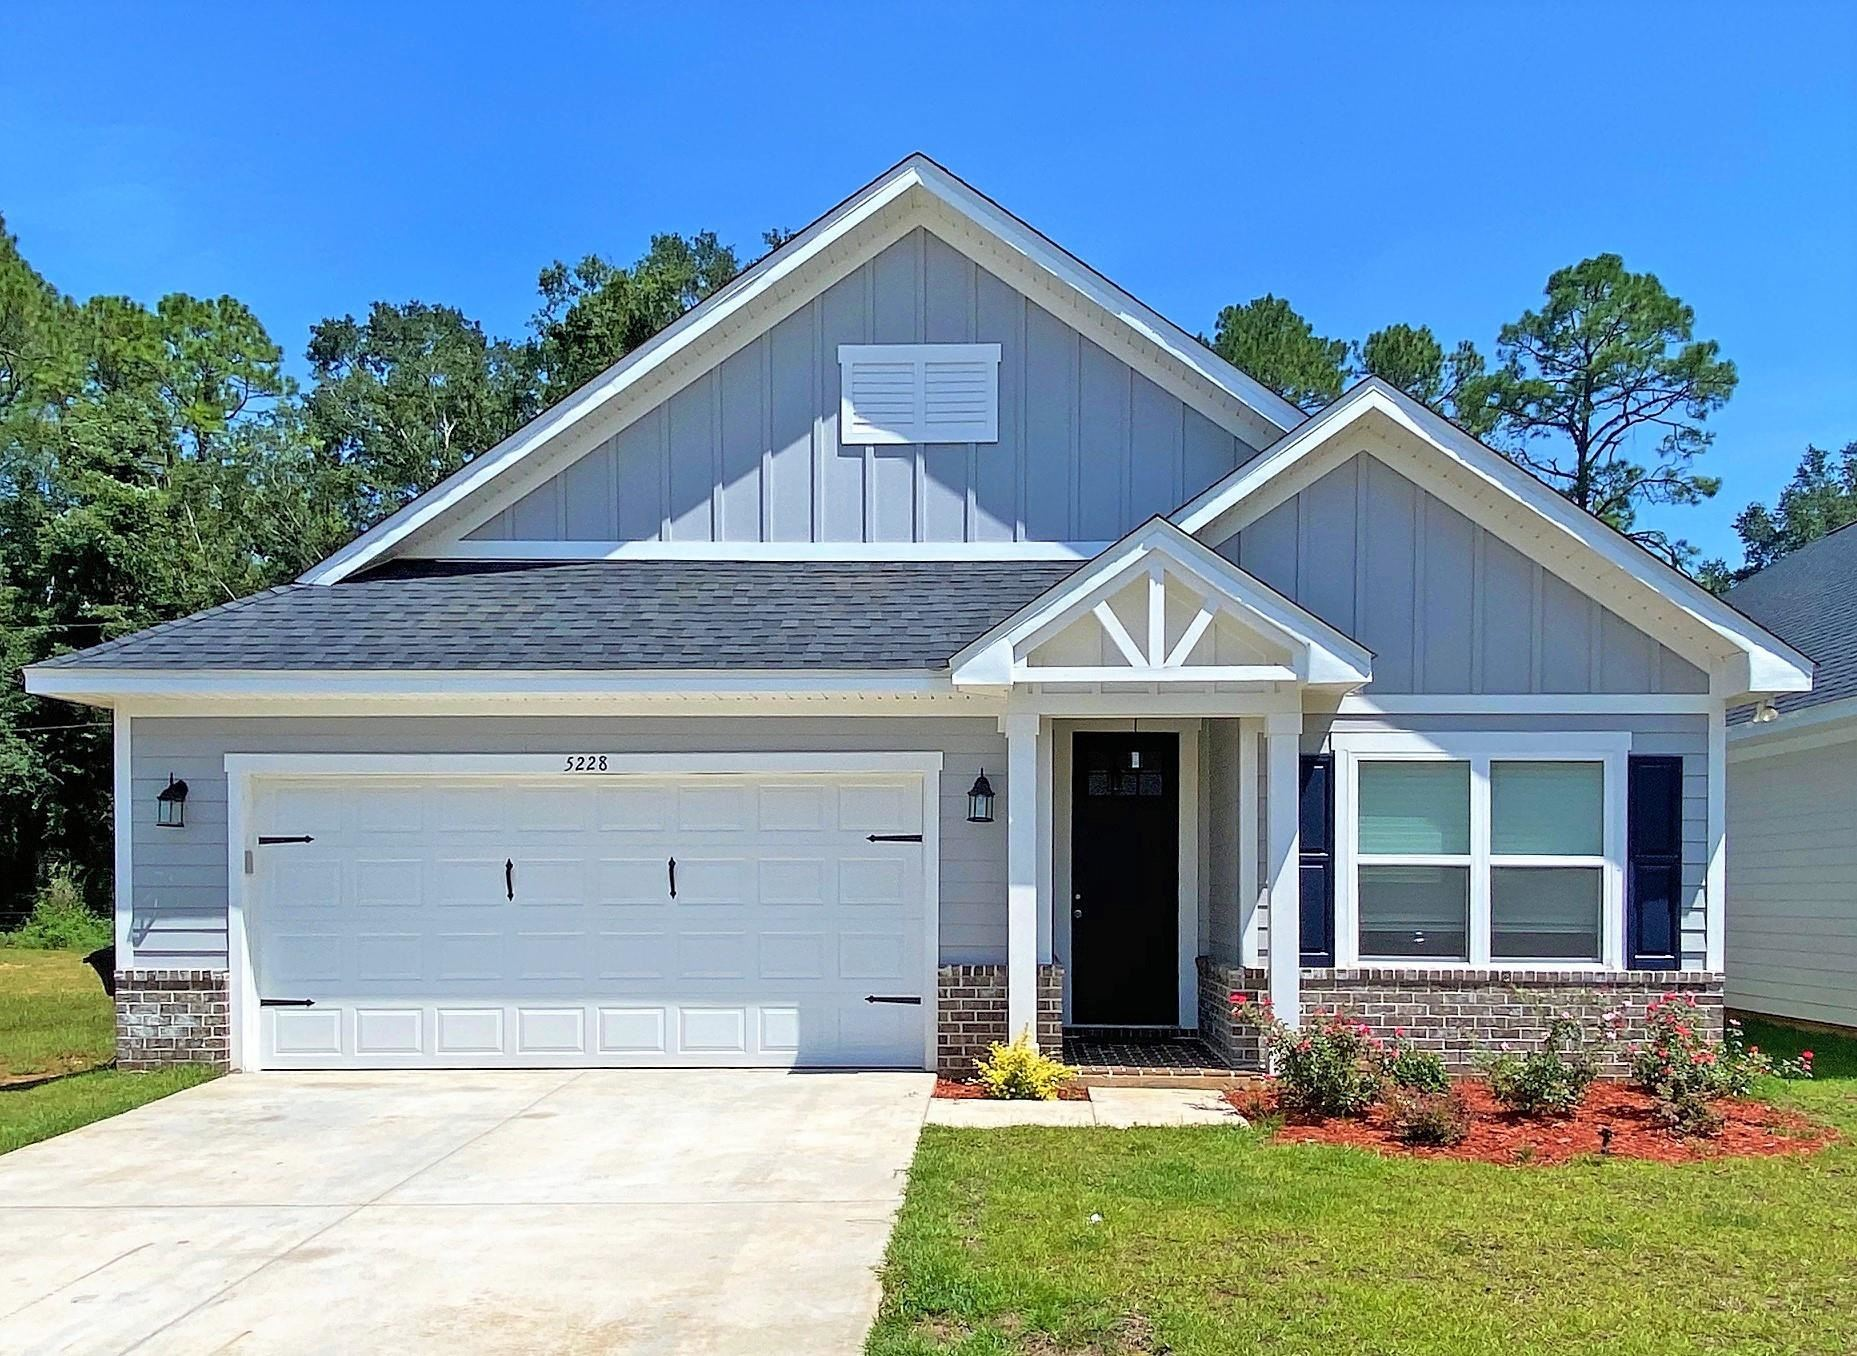 A3 River Breeze Lane, Tallahassee, FL 32303 - MLS#: 330108